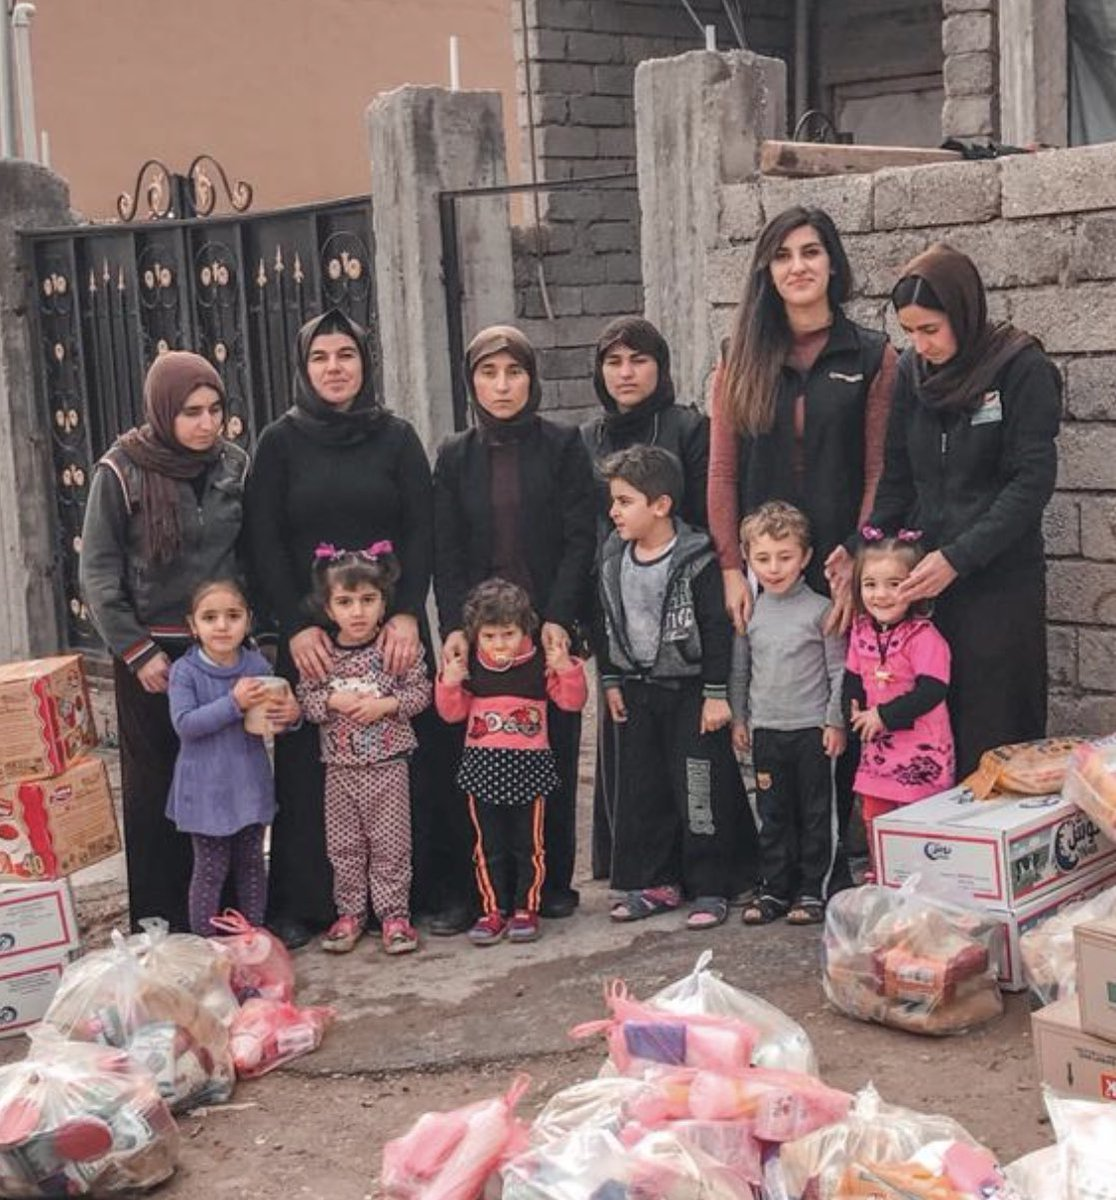 #YezidiGenocide   Our #Iraq coordinator @FahmiSozan has been coordinating aid for the #Yezidi IDPs since 2015 !Most of these women have lost their families to ISIS brutality! We have been providing food and other essential support to these women   Our support continues.... pic.twitter.com/ovN8x3AK9V